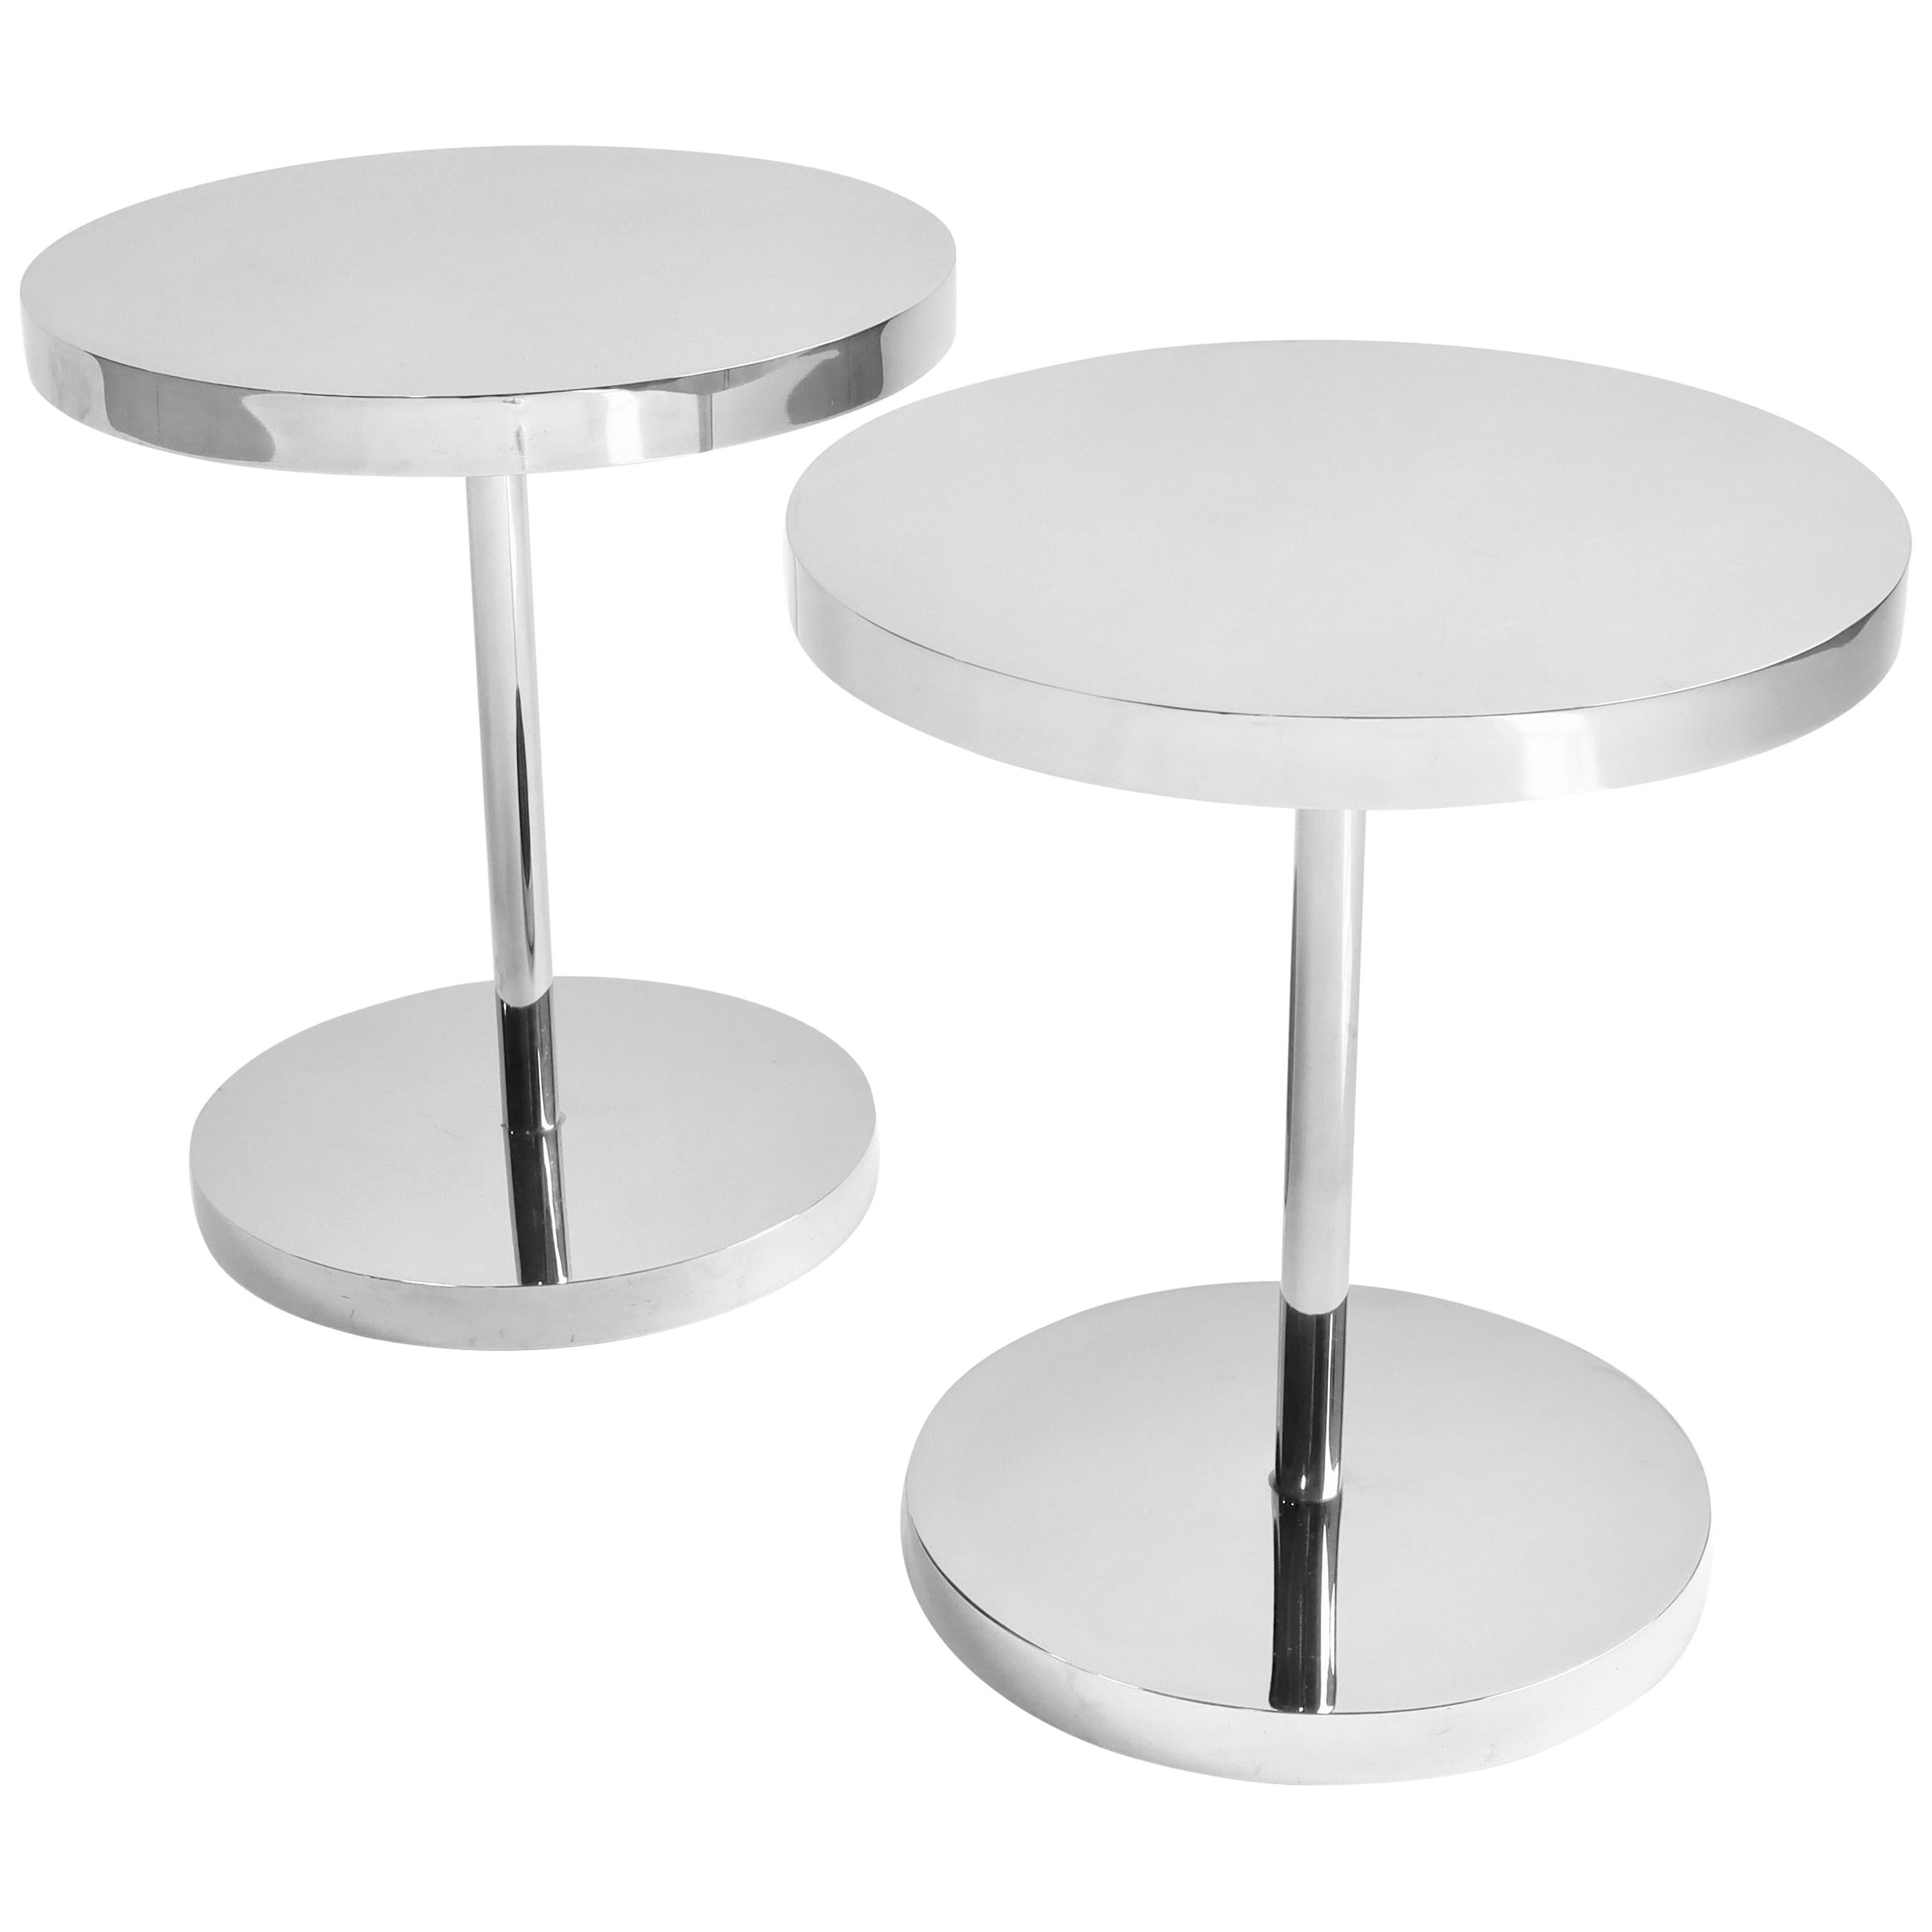 Pair of Polished Stainless Steel Side Tables